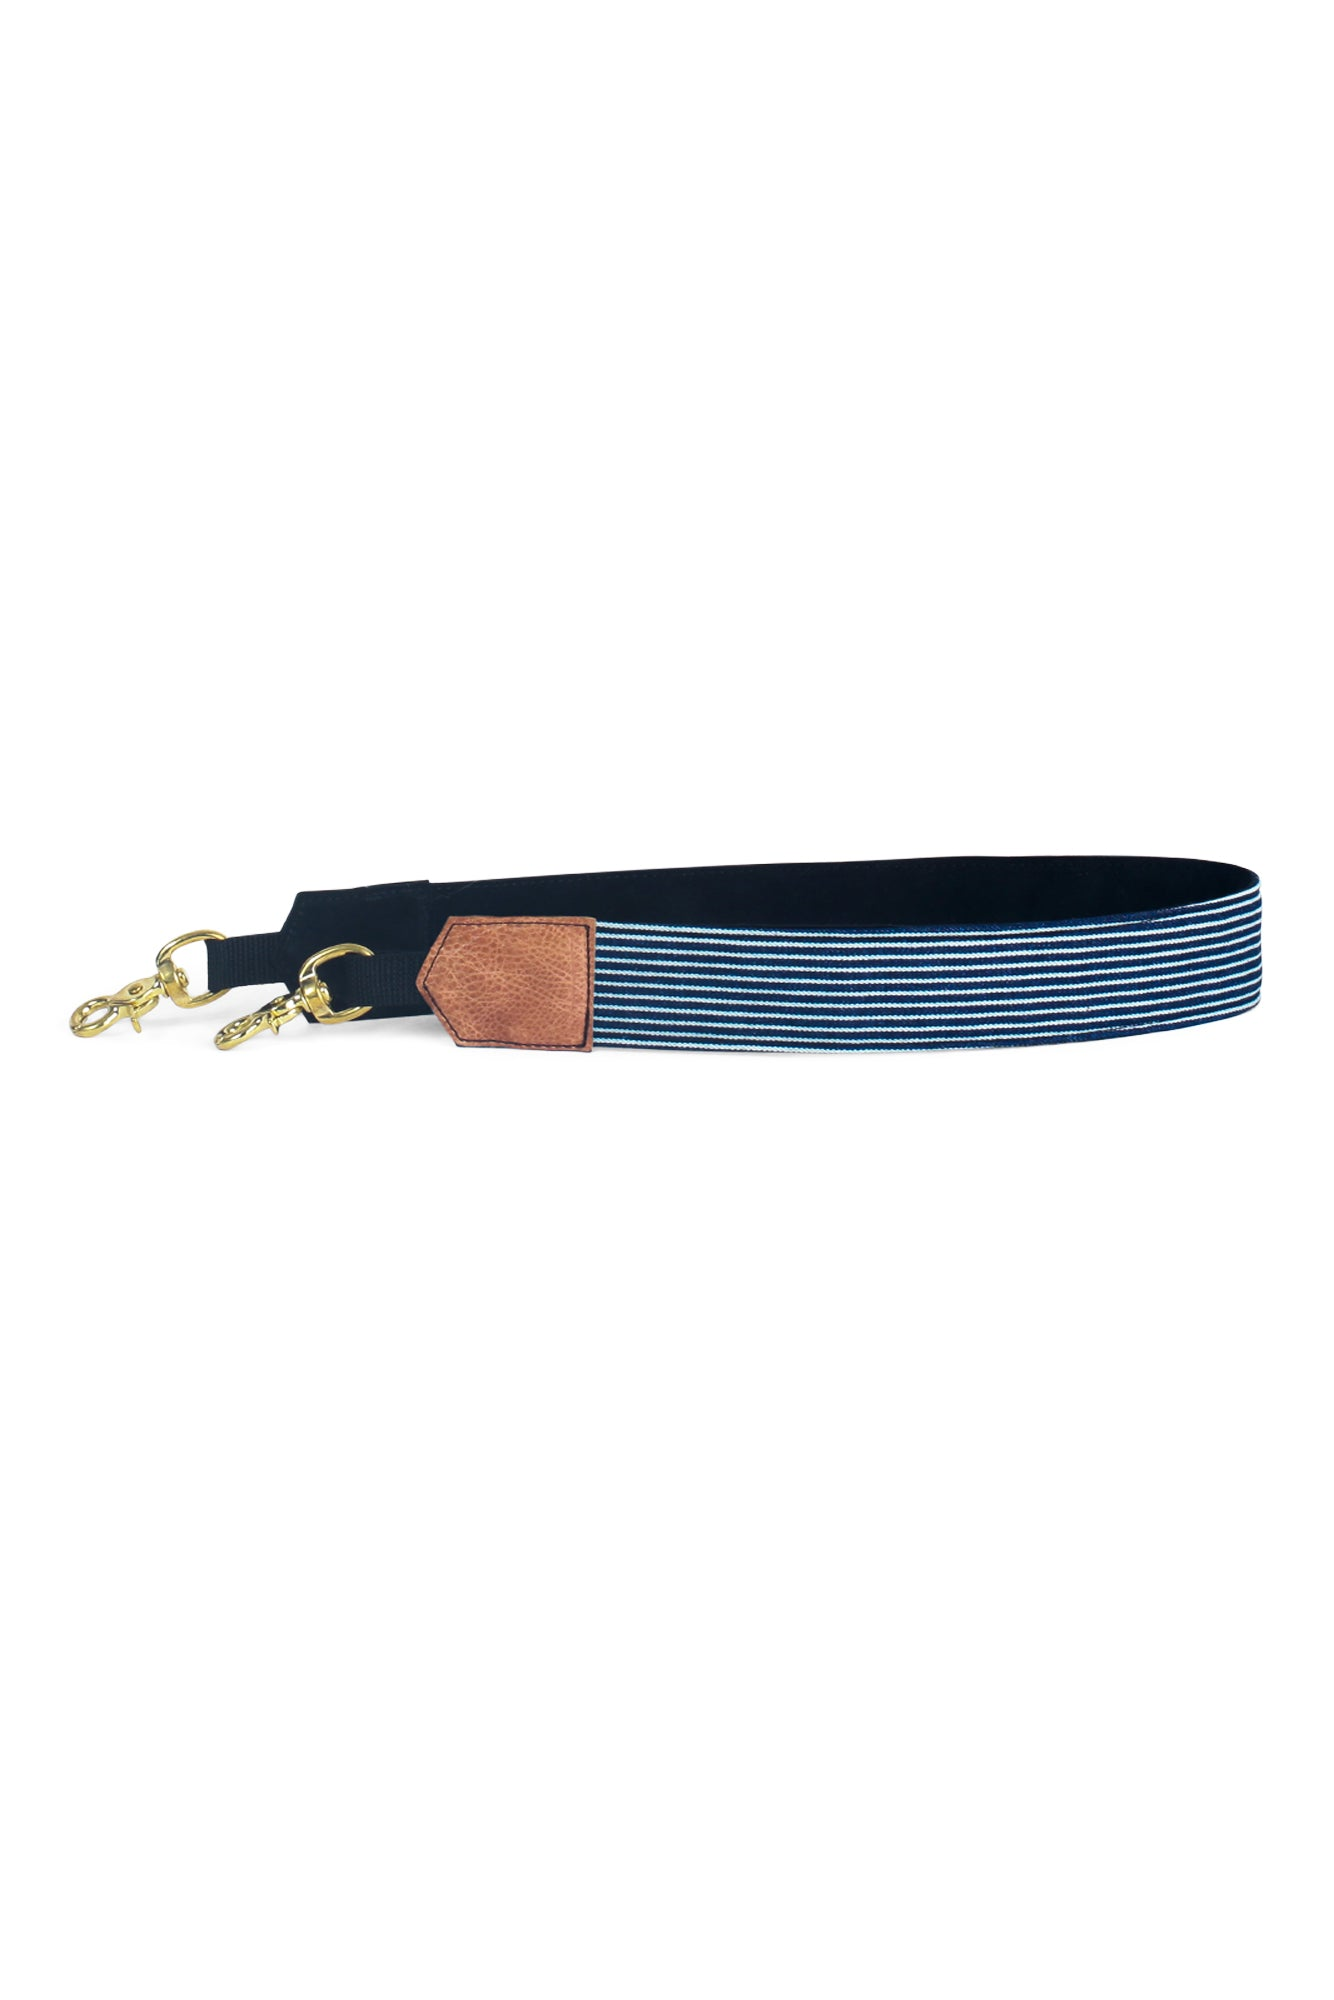 The Rais Case Strap - Kel - image 1